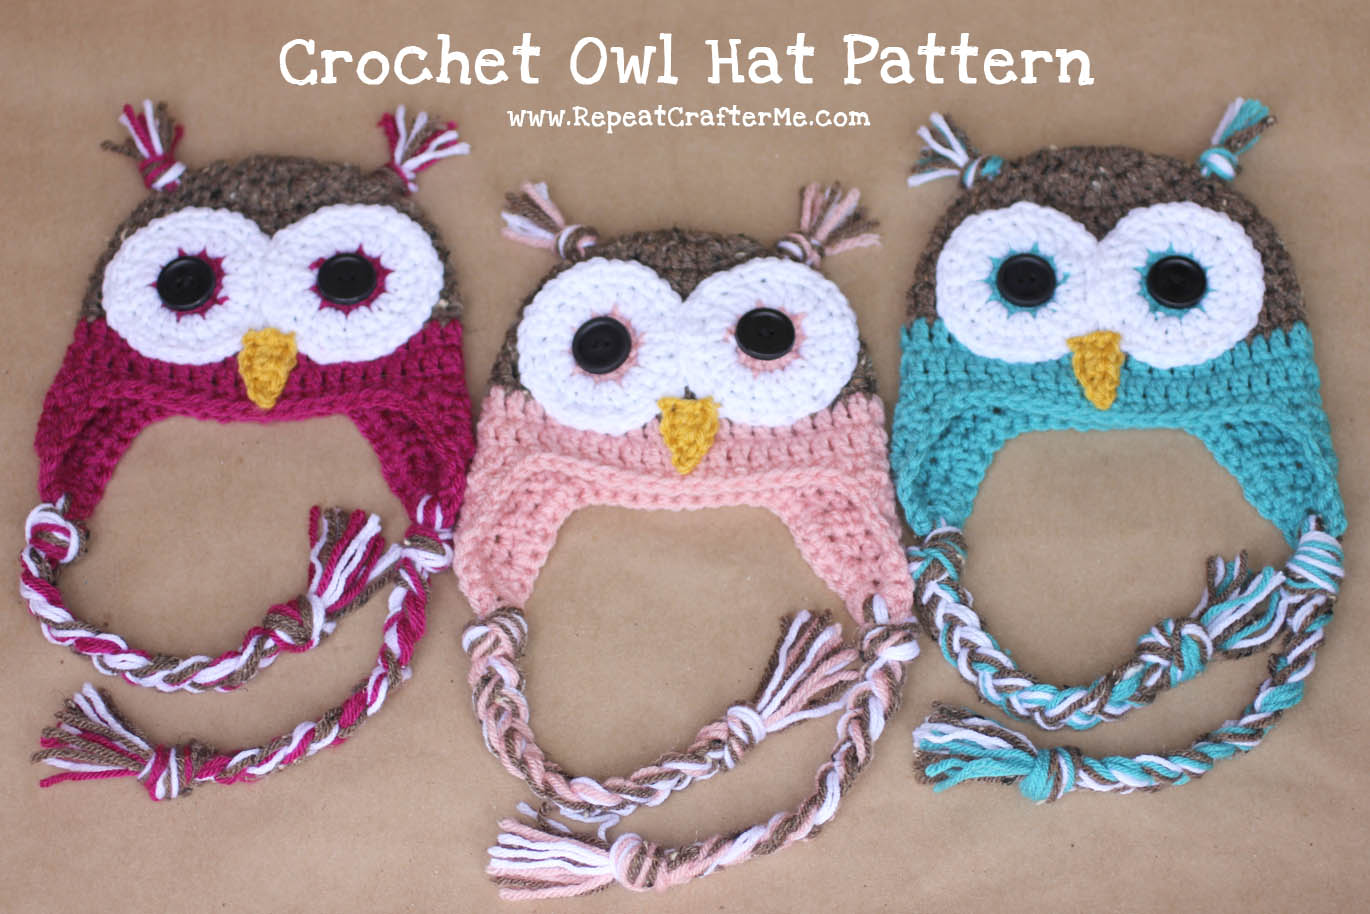 Crochet Me Free Patterns : Crochet Owl Hat Pattern - Repeat Crafter Me